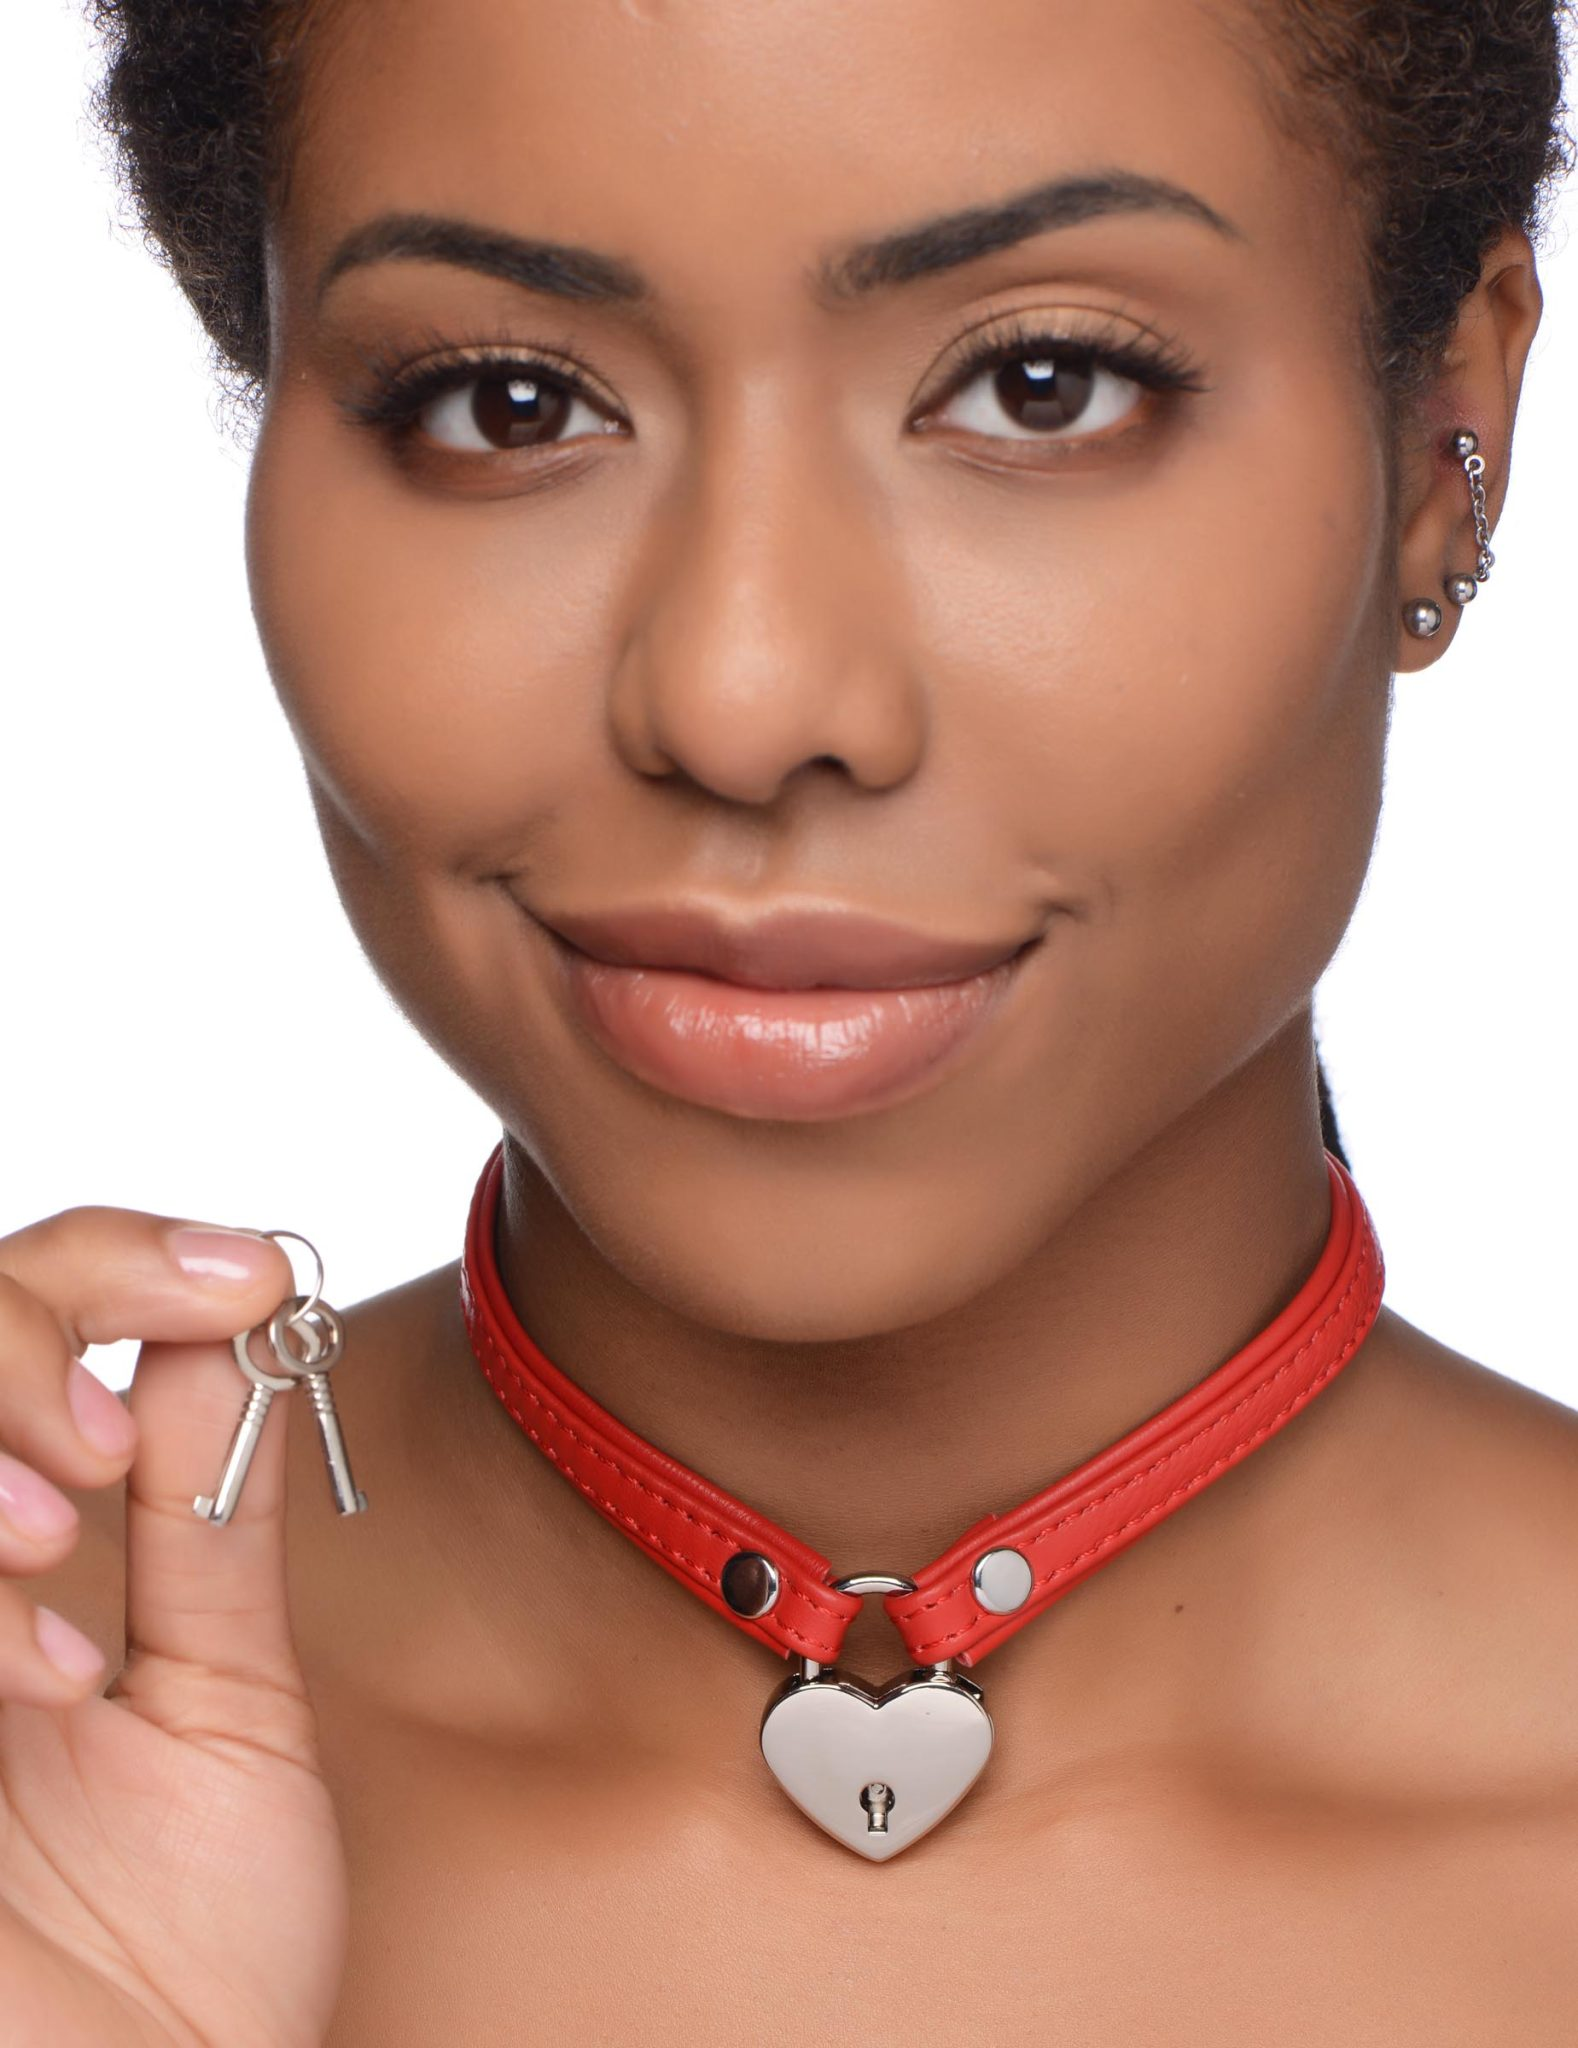 Heart Lock Leather Choker with Lock and Key – Red